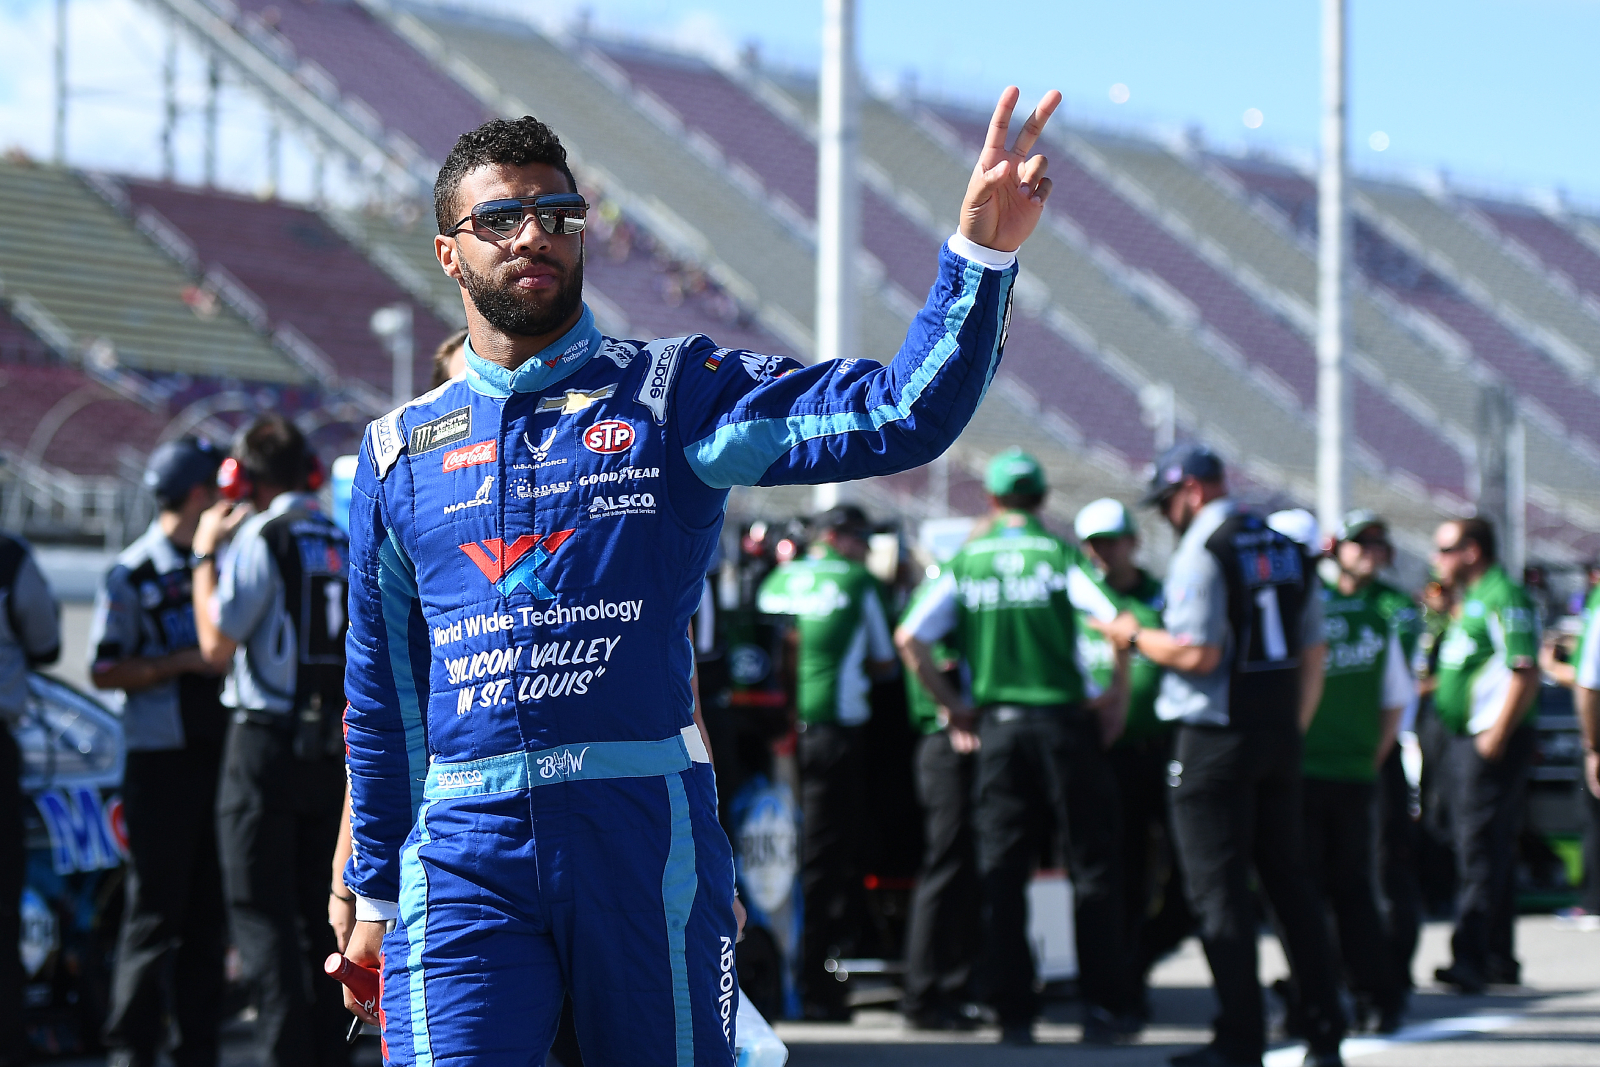 Bubba Wallace and Kyle Larson spoke after Larson used a racial slur earlier this year. Wallace recently opened up about their conversation.